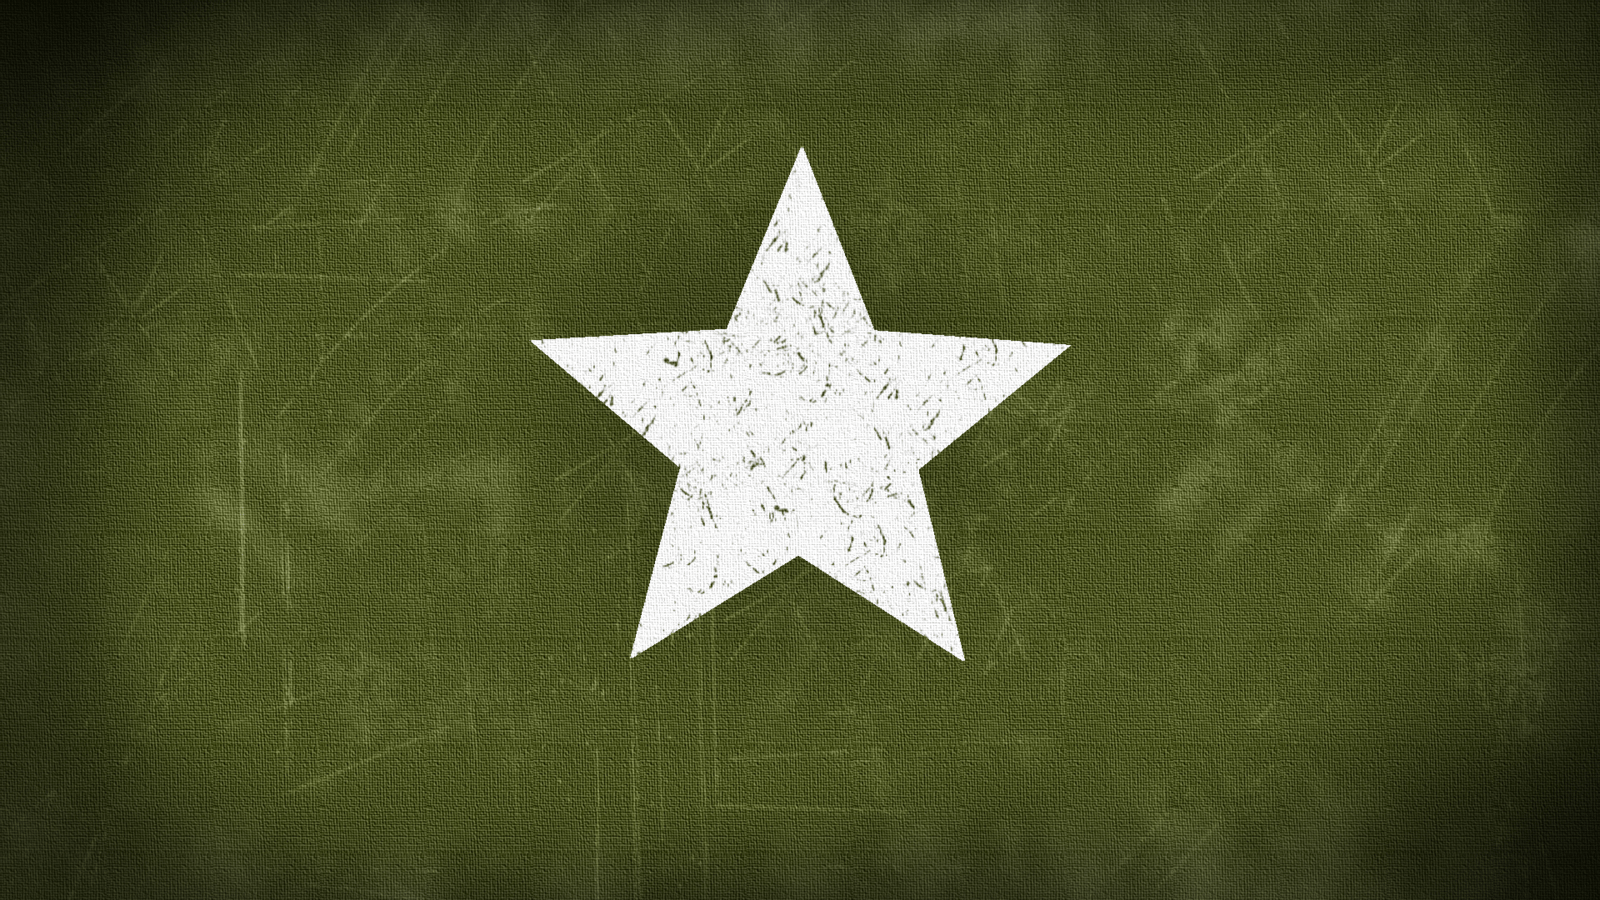 1600x900 Us Army Star Hd Wallpaper | High Definitions Wallpapers